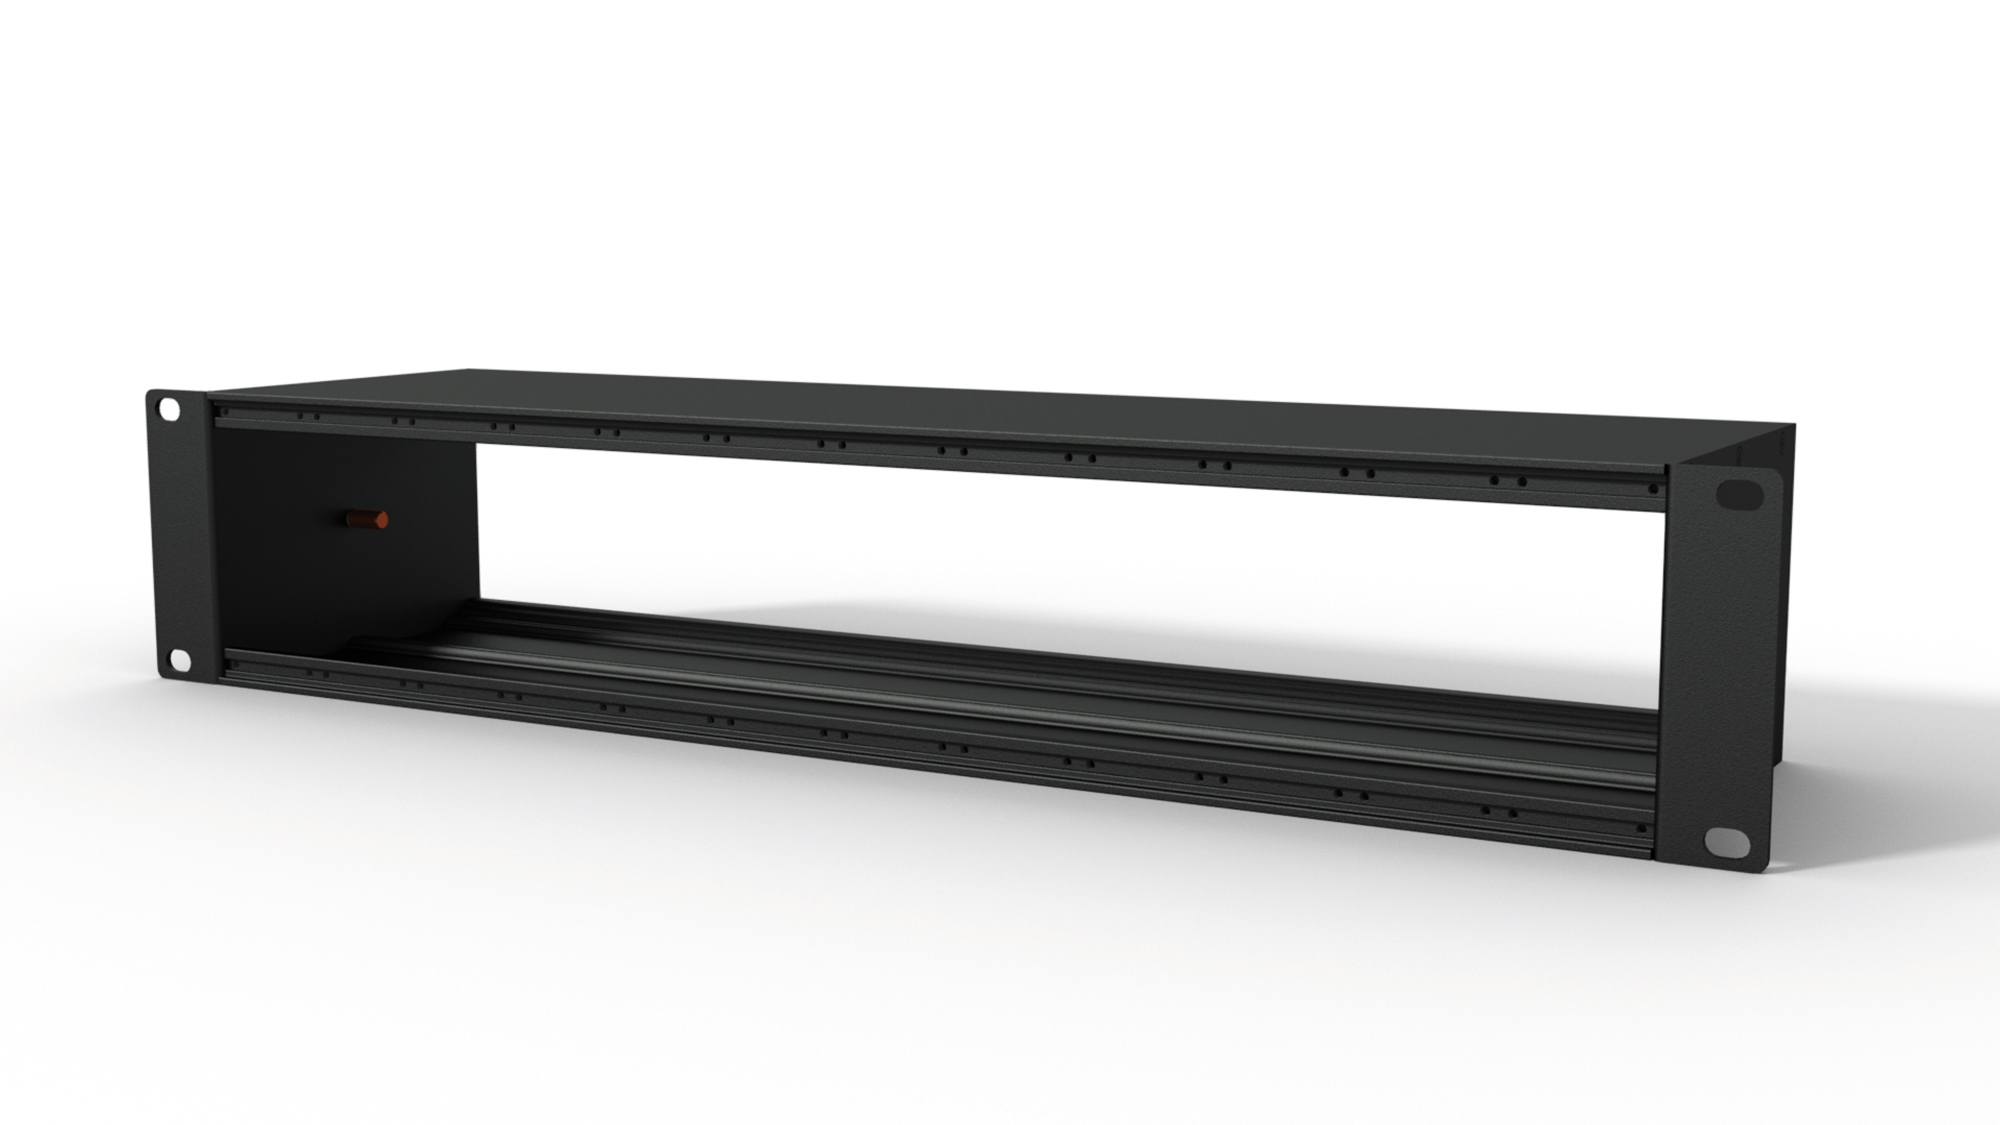 "CASY modular patching solution chassis 12 space - 2he 19"" mounting - 120mm. Black."